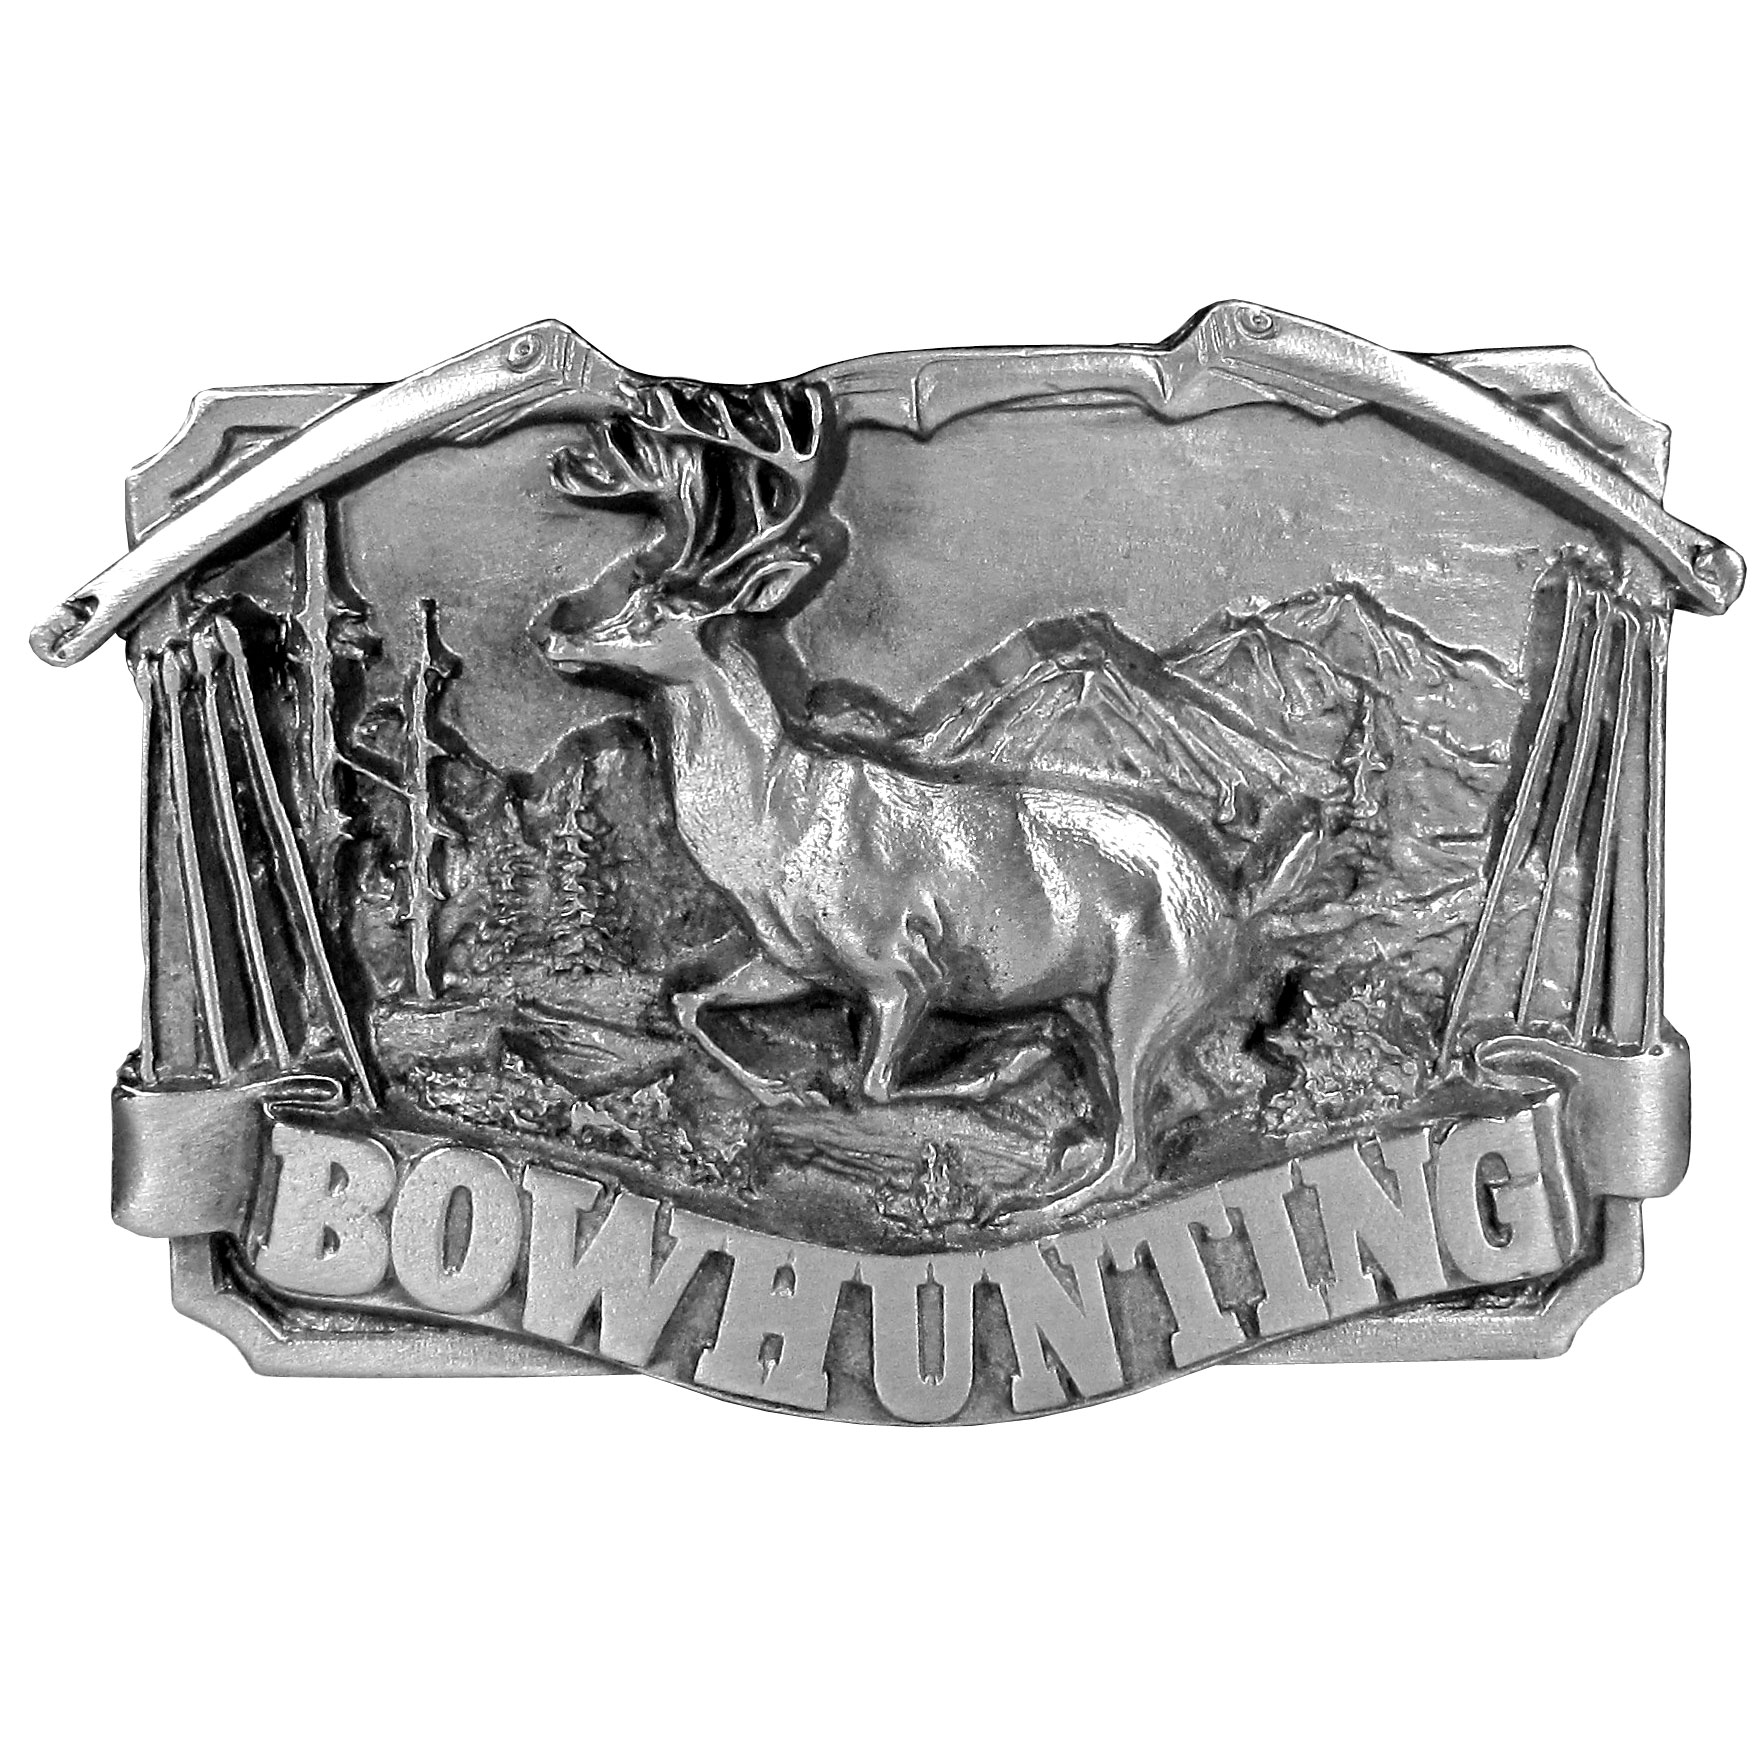 "Bowhunting Antiqued Belt Buckle - ""This belt buckle is to celebrate bowhunting!  The word """"Bowhunting"""" is written in bold on the bottom with a buck with antlers in the center with mountains and trees in the background.  On the top is a bow with arrows on the sides.  On the back are the words, """"Bowhunting is a demanding sport of great skill and patience.  The skills required in bowhunting far exceed those of other hunting sports.  To be a bowhunter is to be a true sportsman."""""""